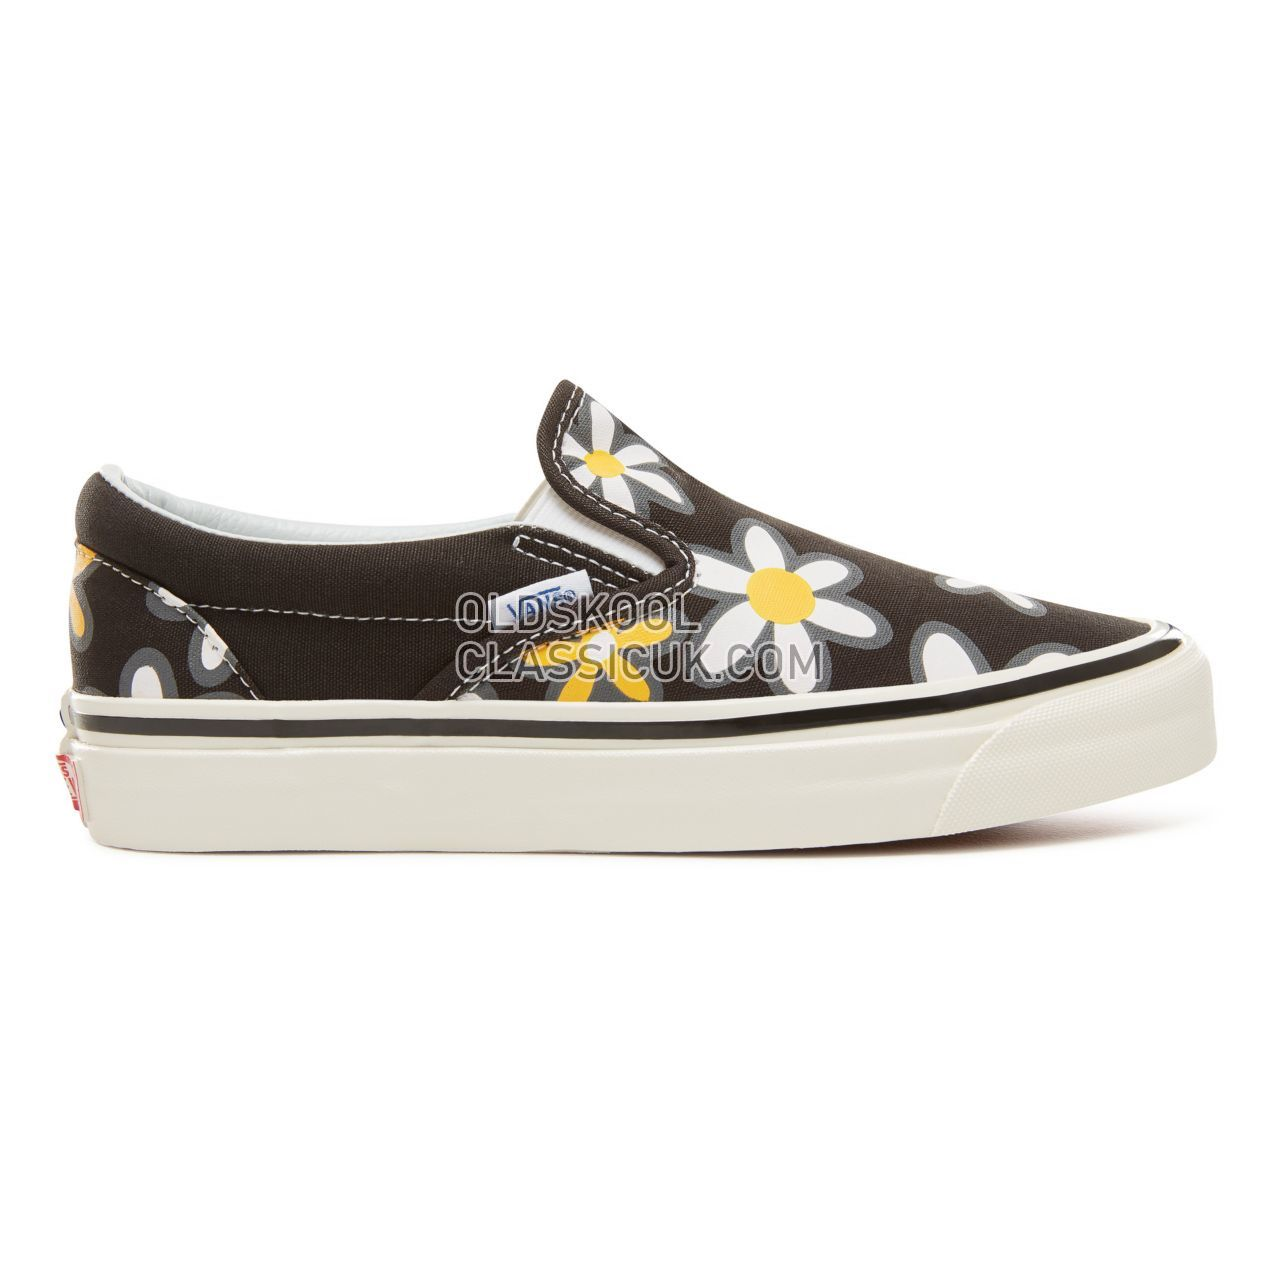 Vans Anaheim Factory Classic Slip-On 98 Sneakers Womens (Anaheim Factory) Og Black/Flower Power VA3JEXU7X Shoes